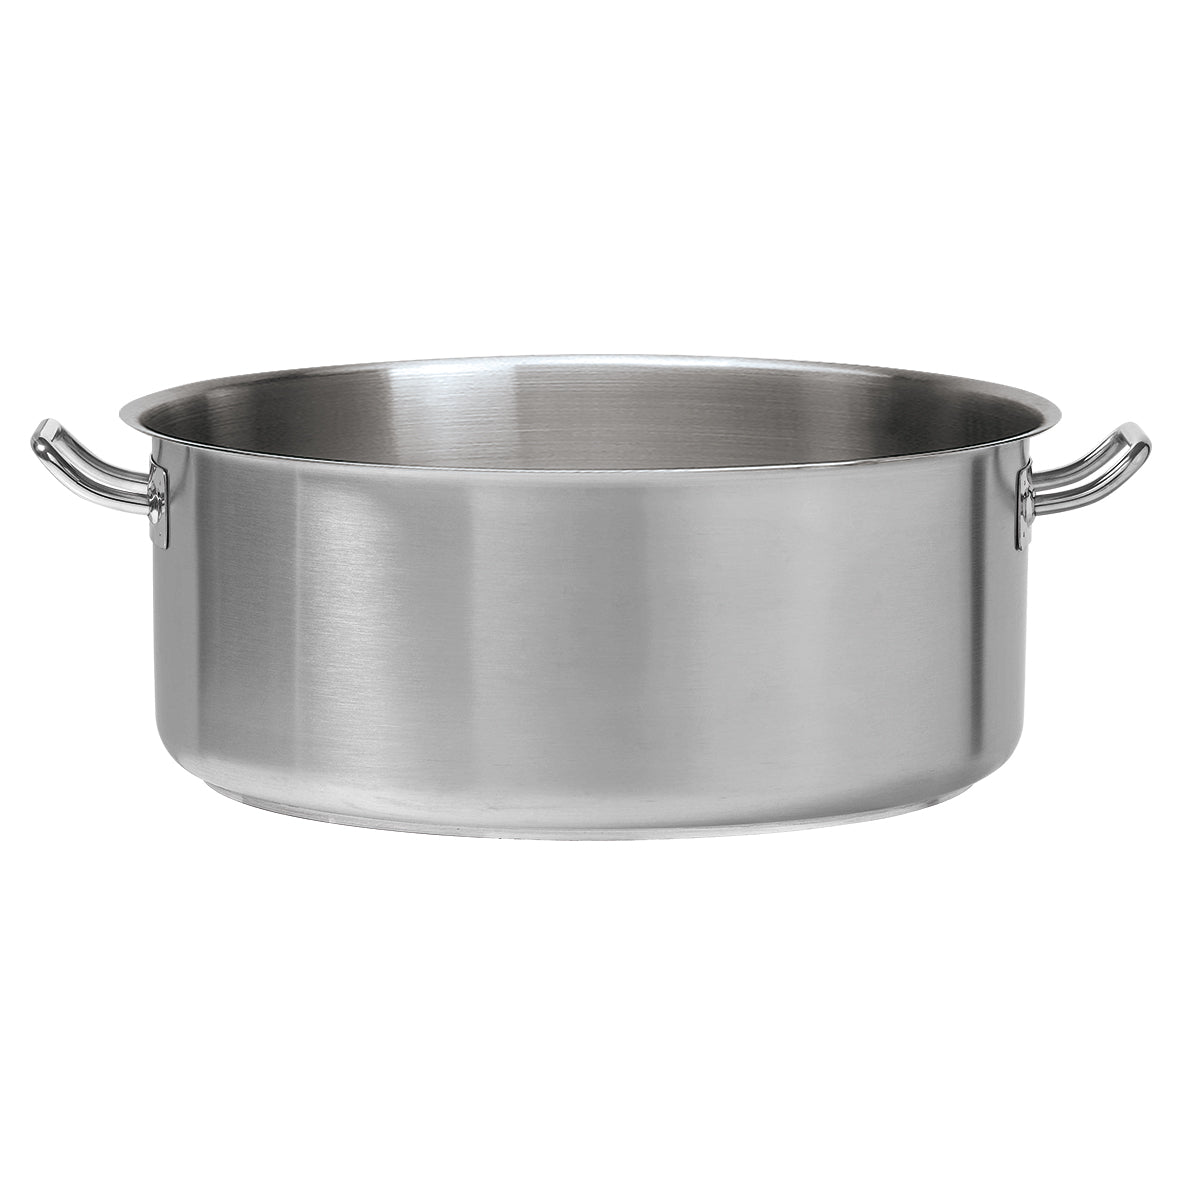 Artame 18/10 Stainless Steel Casseroles Stockpot